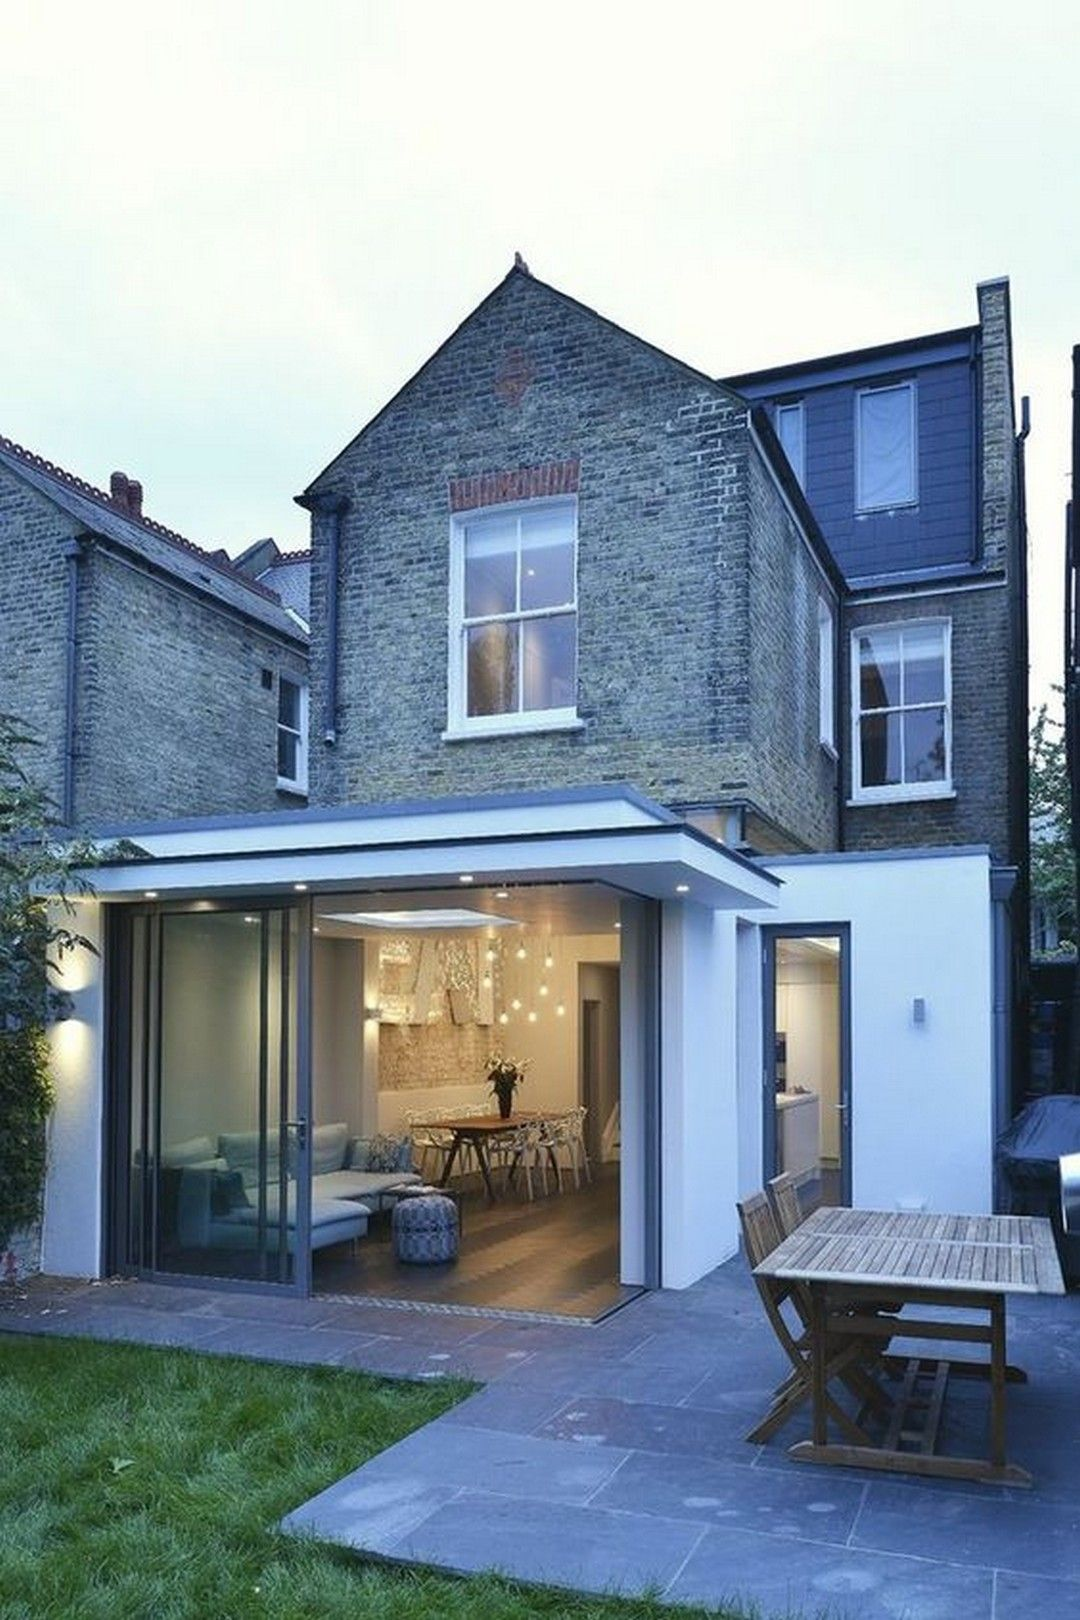 Modern Luxurious Flat Roof House Designs You Should Know London House Flat Roof House Designs Flat Roof House